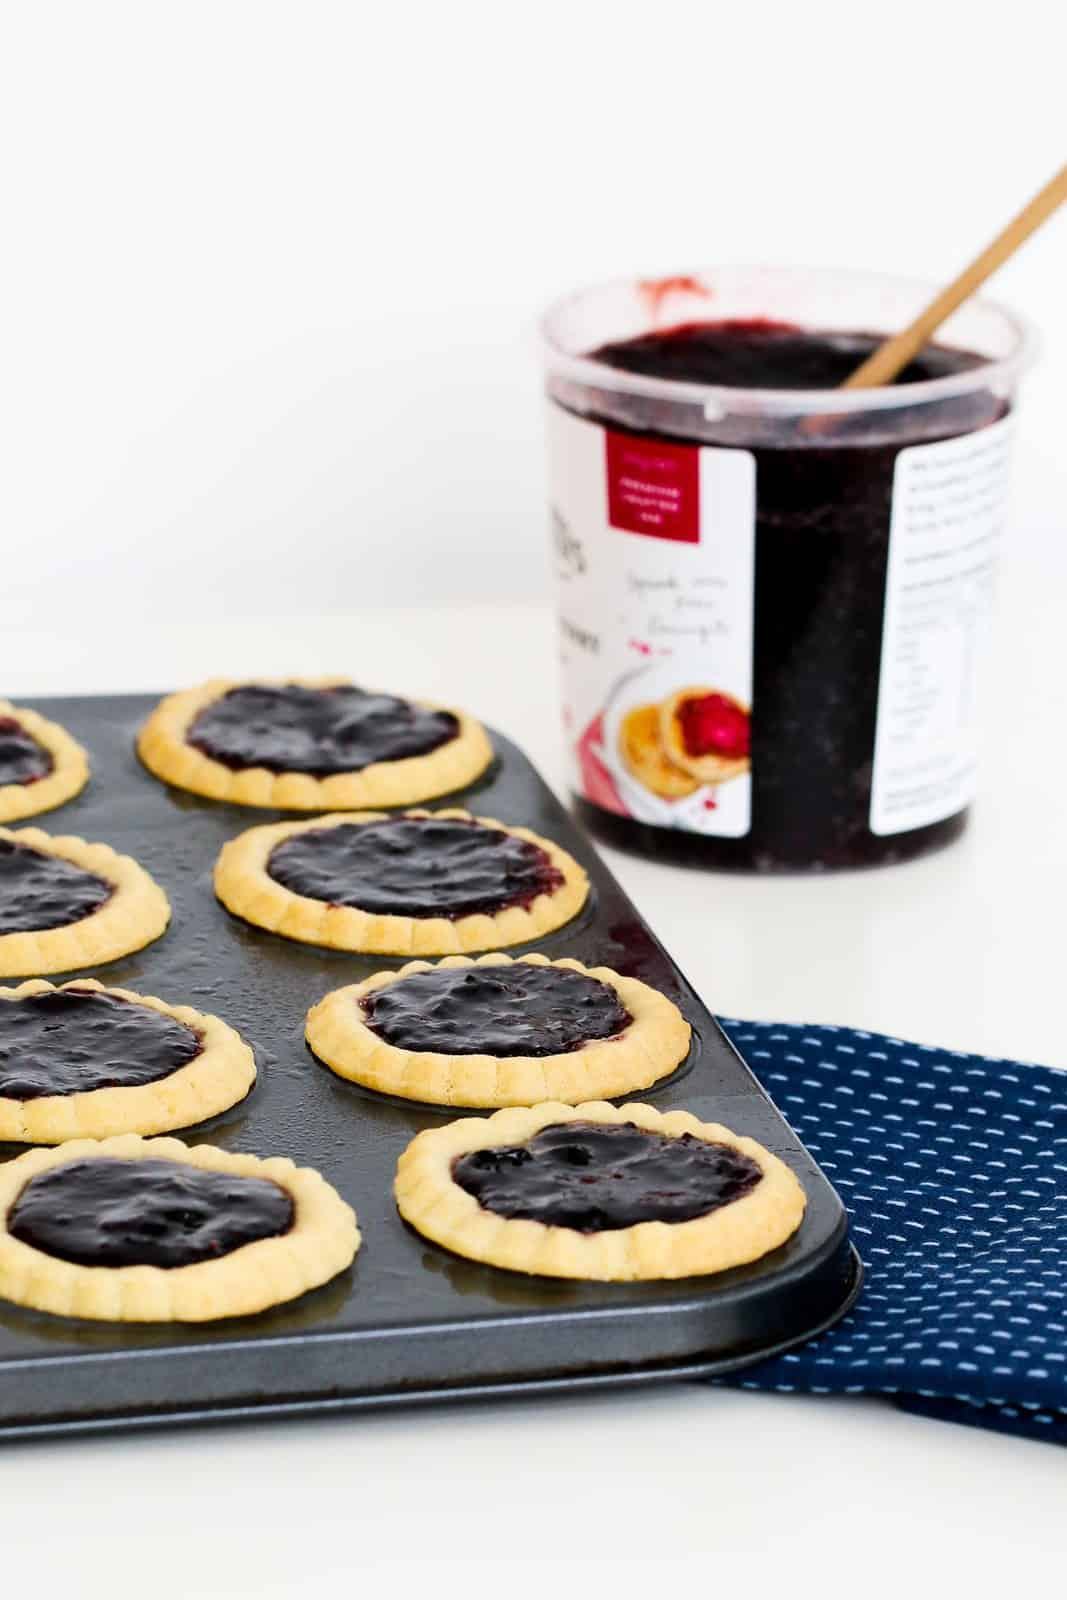 A patty pan tin filled with pastry and jam.